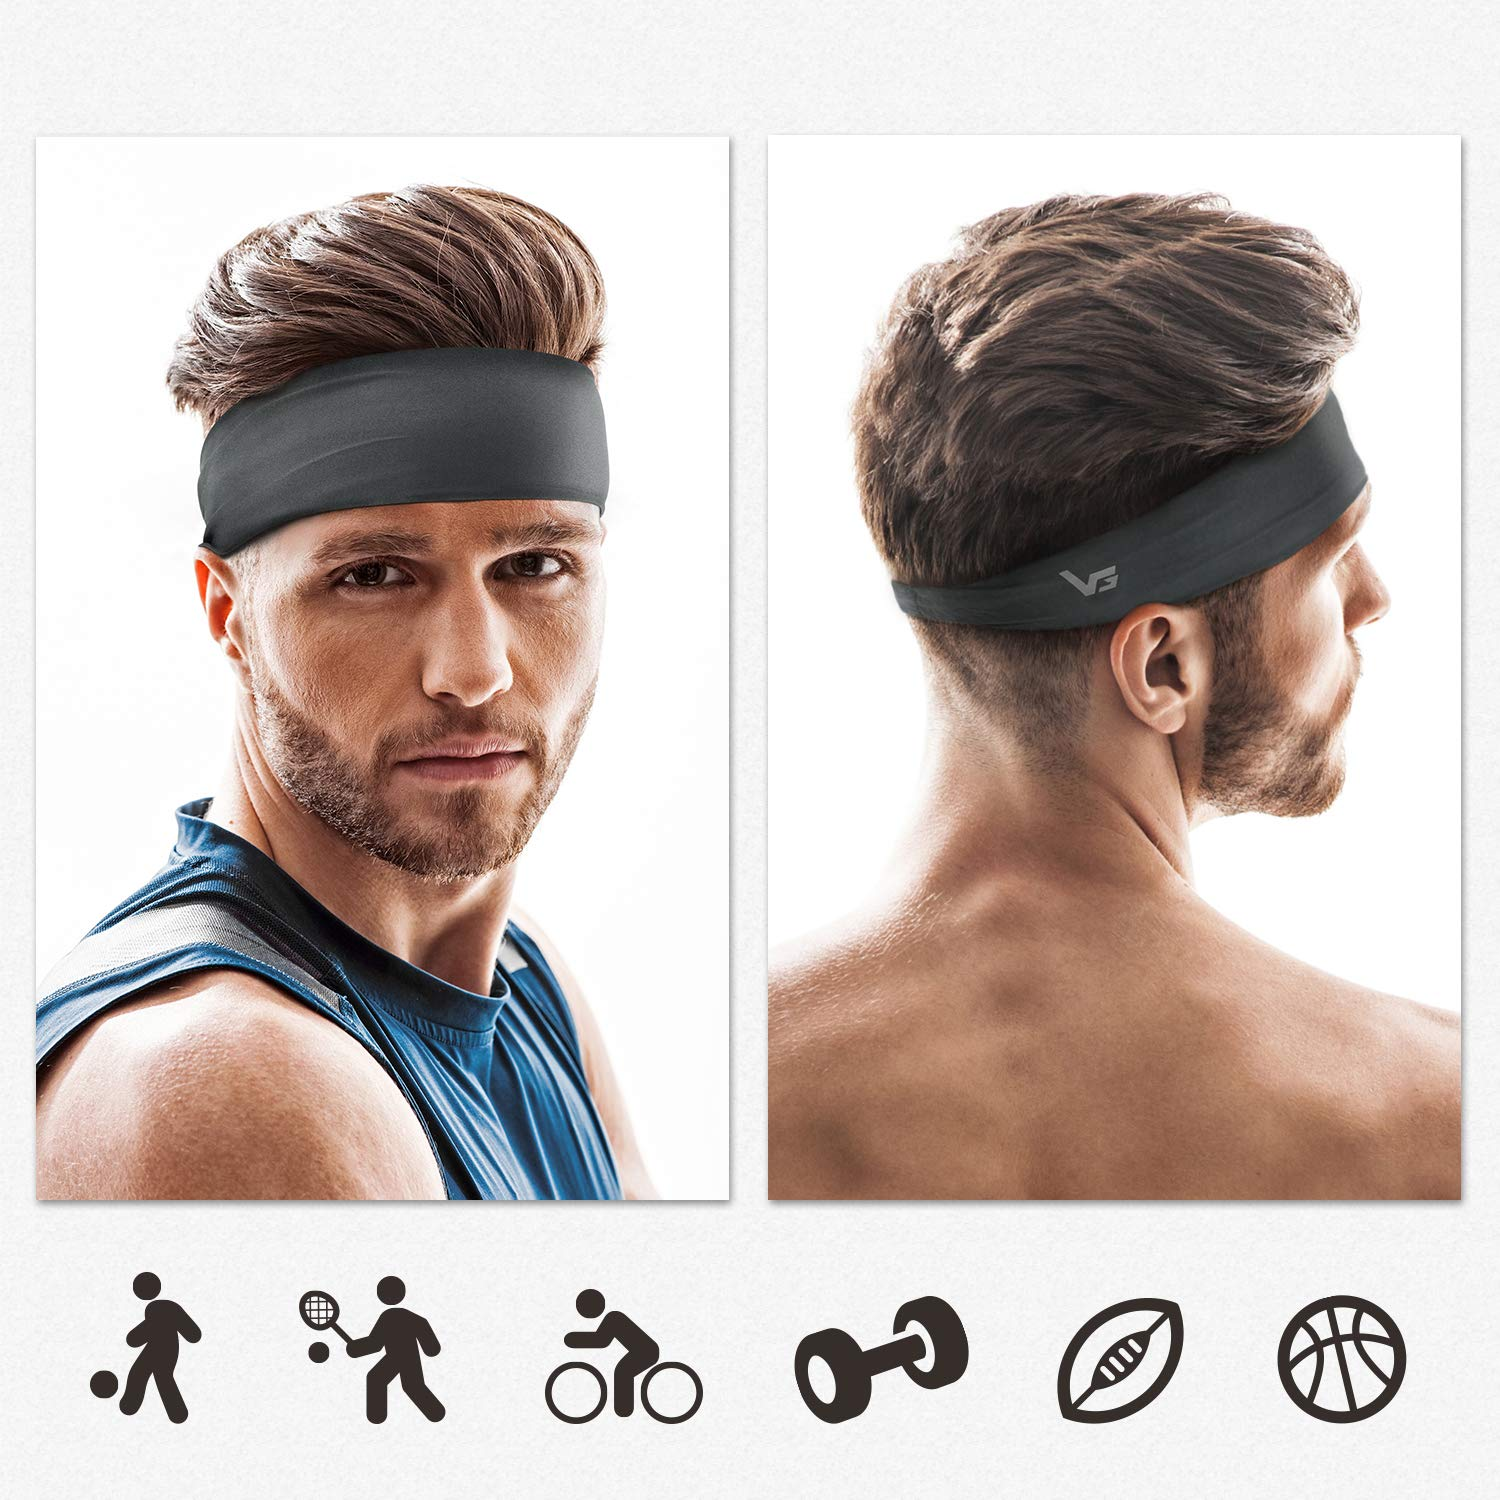 - Non Slip Lightweight Sweat Band Moisture Wicking Workout Sweatbands for Running Cross Training Vinsguir Sports Headbands for Men and Women 4 Pack Unisex Hairband Yoga and Bike